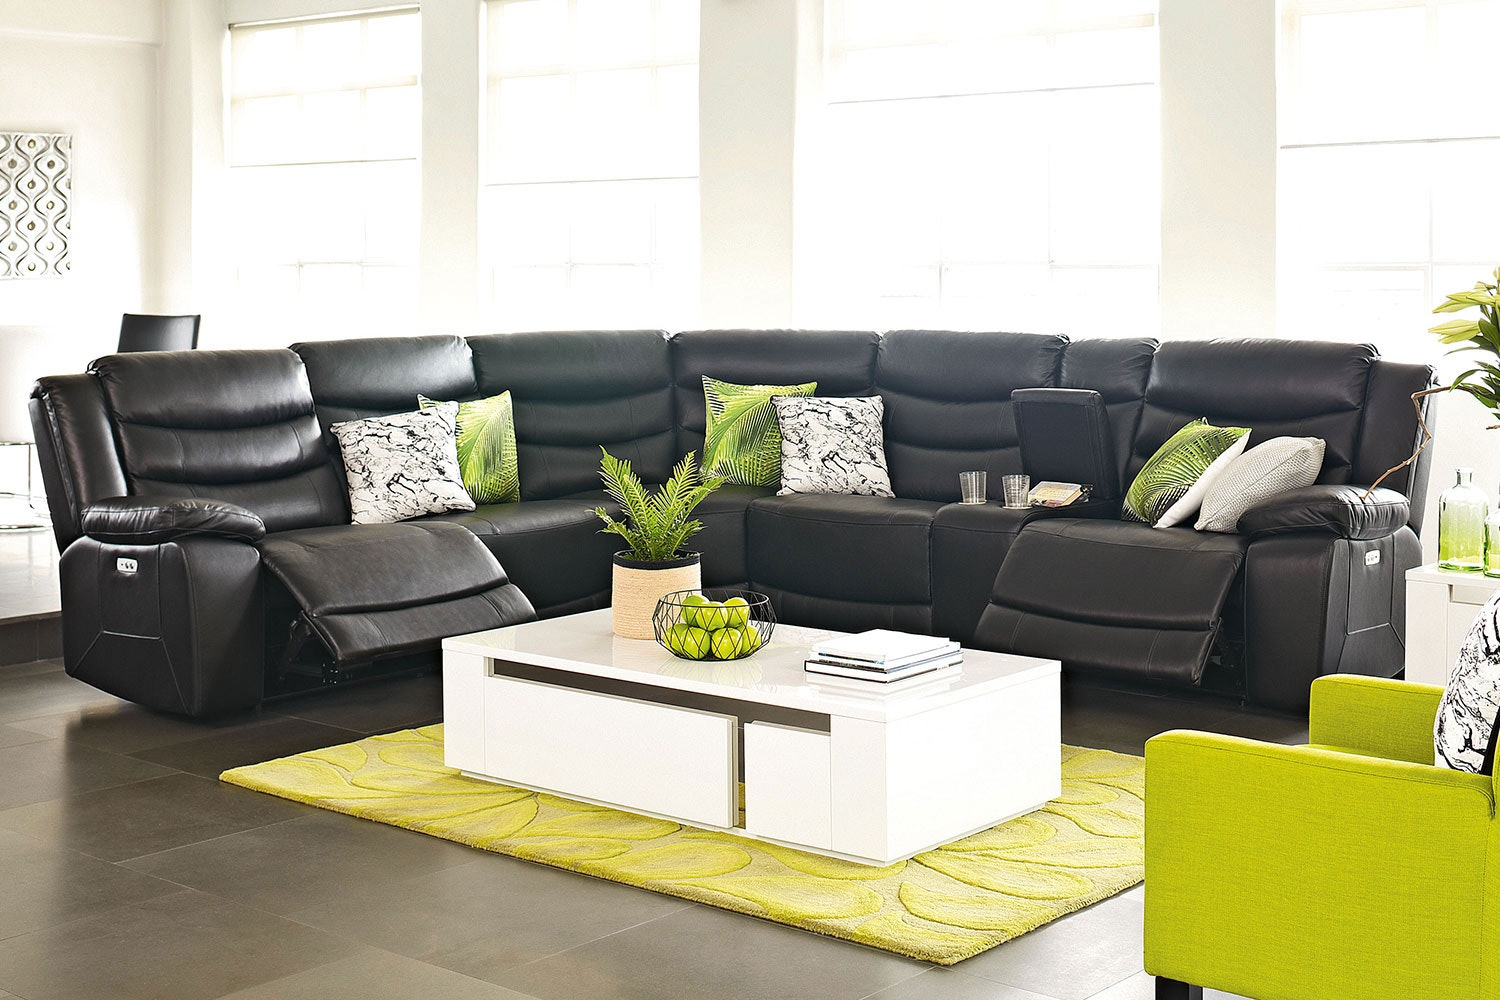 Cairo 5 Seater Leather Corner Lounge Suite By Smart Comfort Harvey